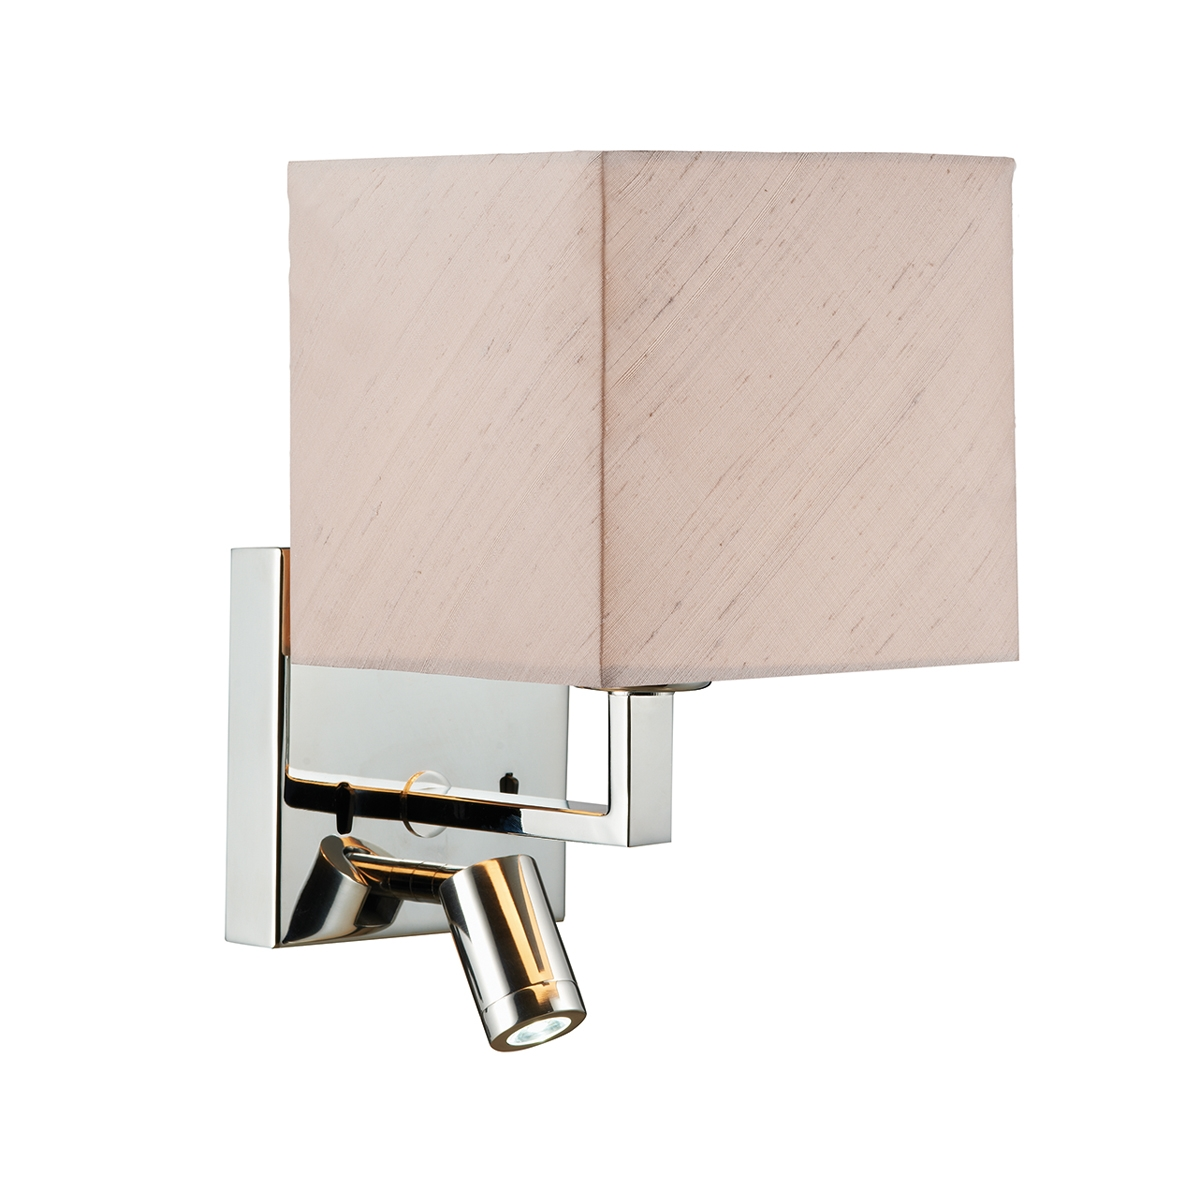 Anvil Wall Light with LED Arm